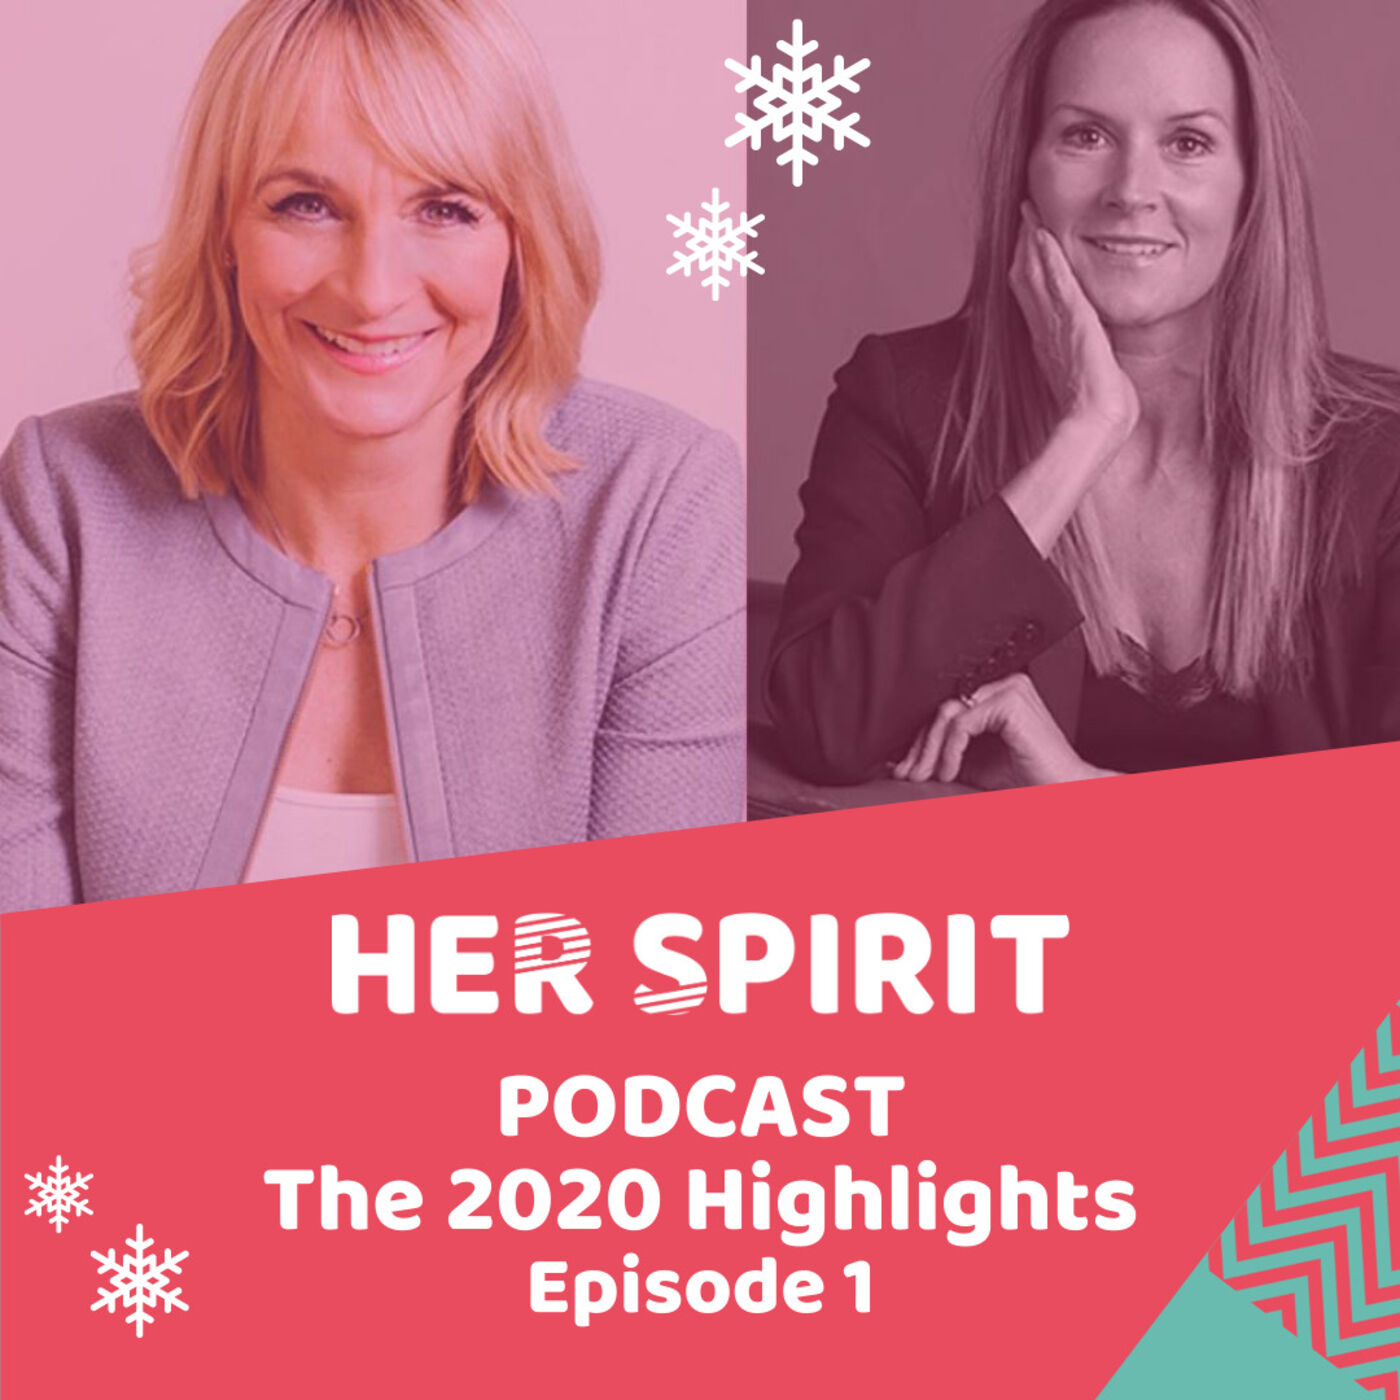 Louise and Annie review the podcasts from series 2. In the first of three episode they talk about some of the guests they have spoken to including Deborah James, Mel C, Sophie Radcliffe, Eleanor Mills, Alice Dearing and many others.